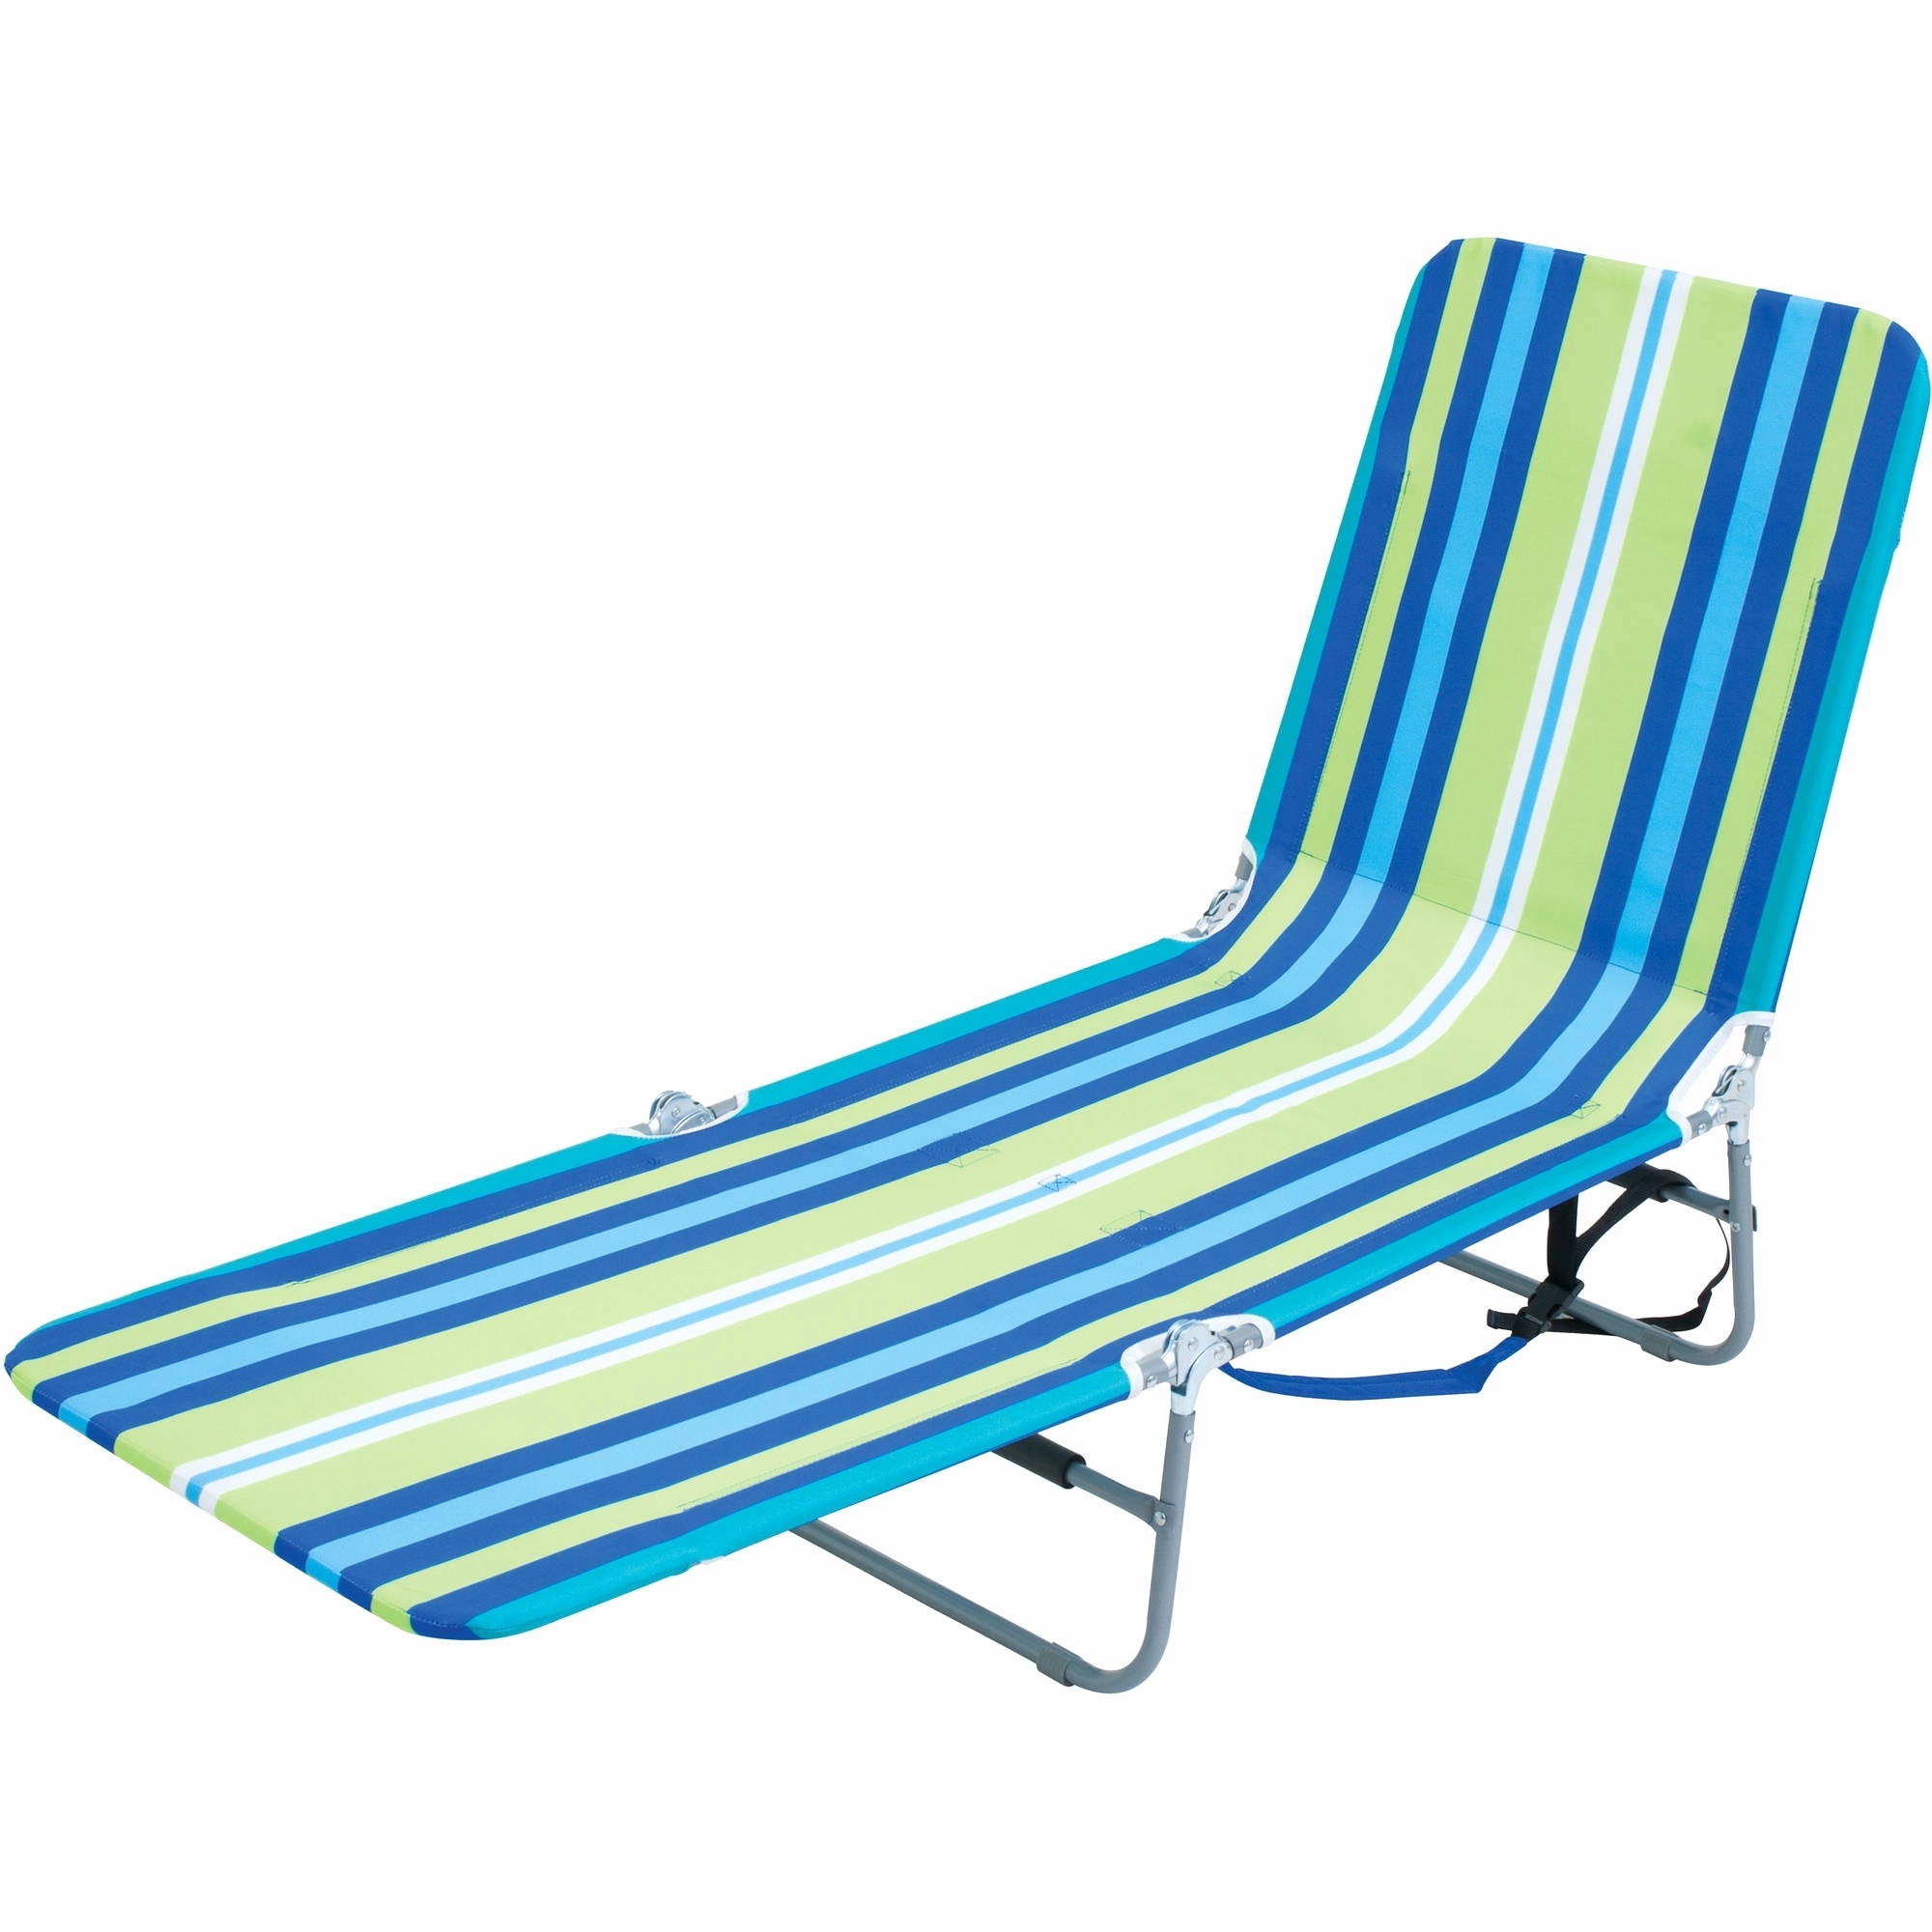 Picture 10 Of 30 – Outdoor Lounge Chairs Walmart Inspirational In Current Outdoor Chaise Lounge Chairs At Walmart (View 15 of 15)